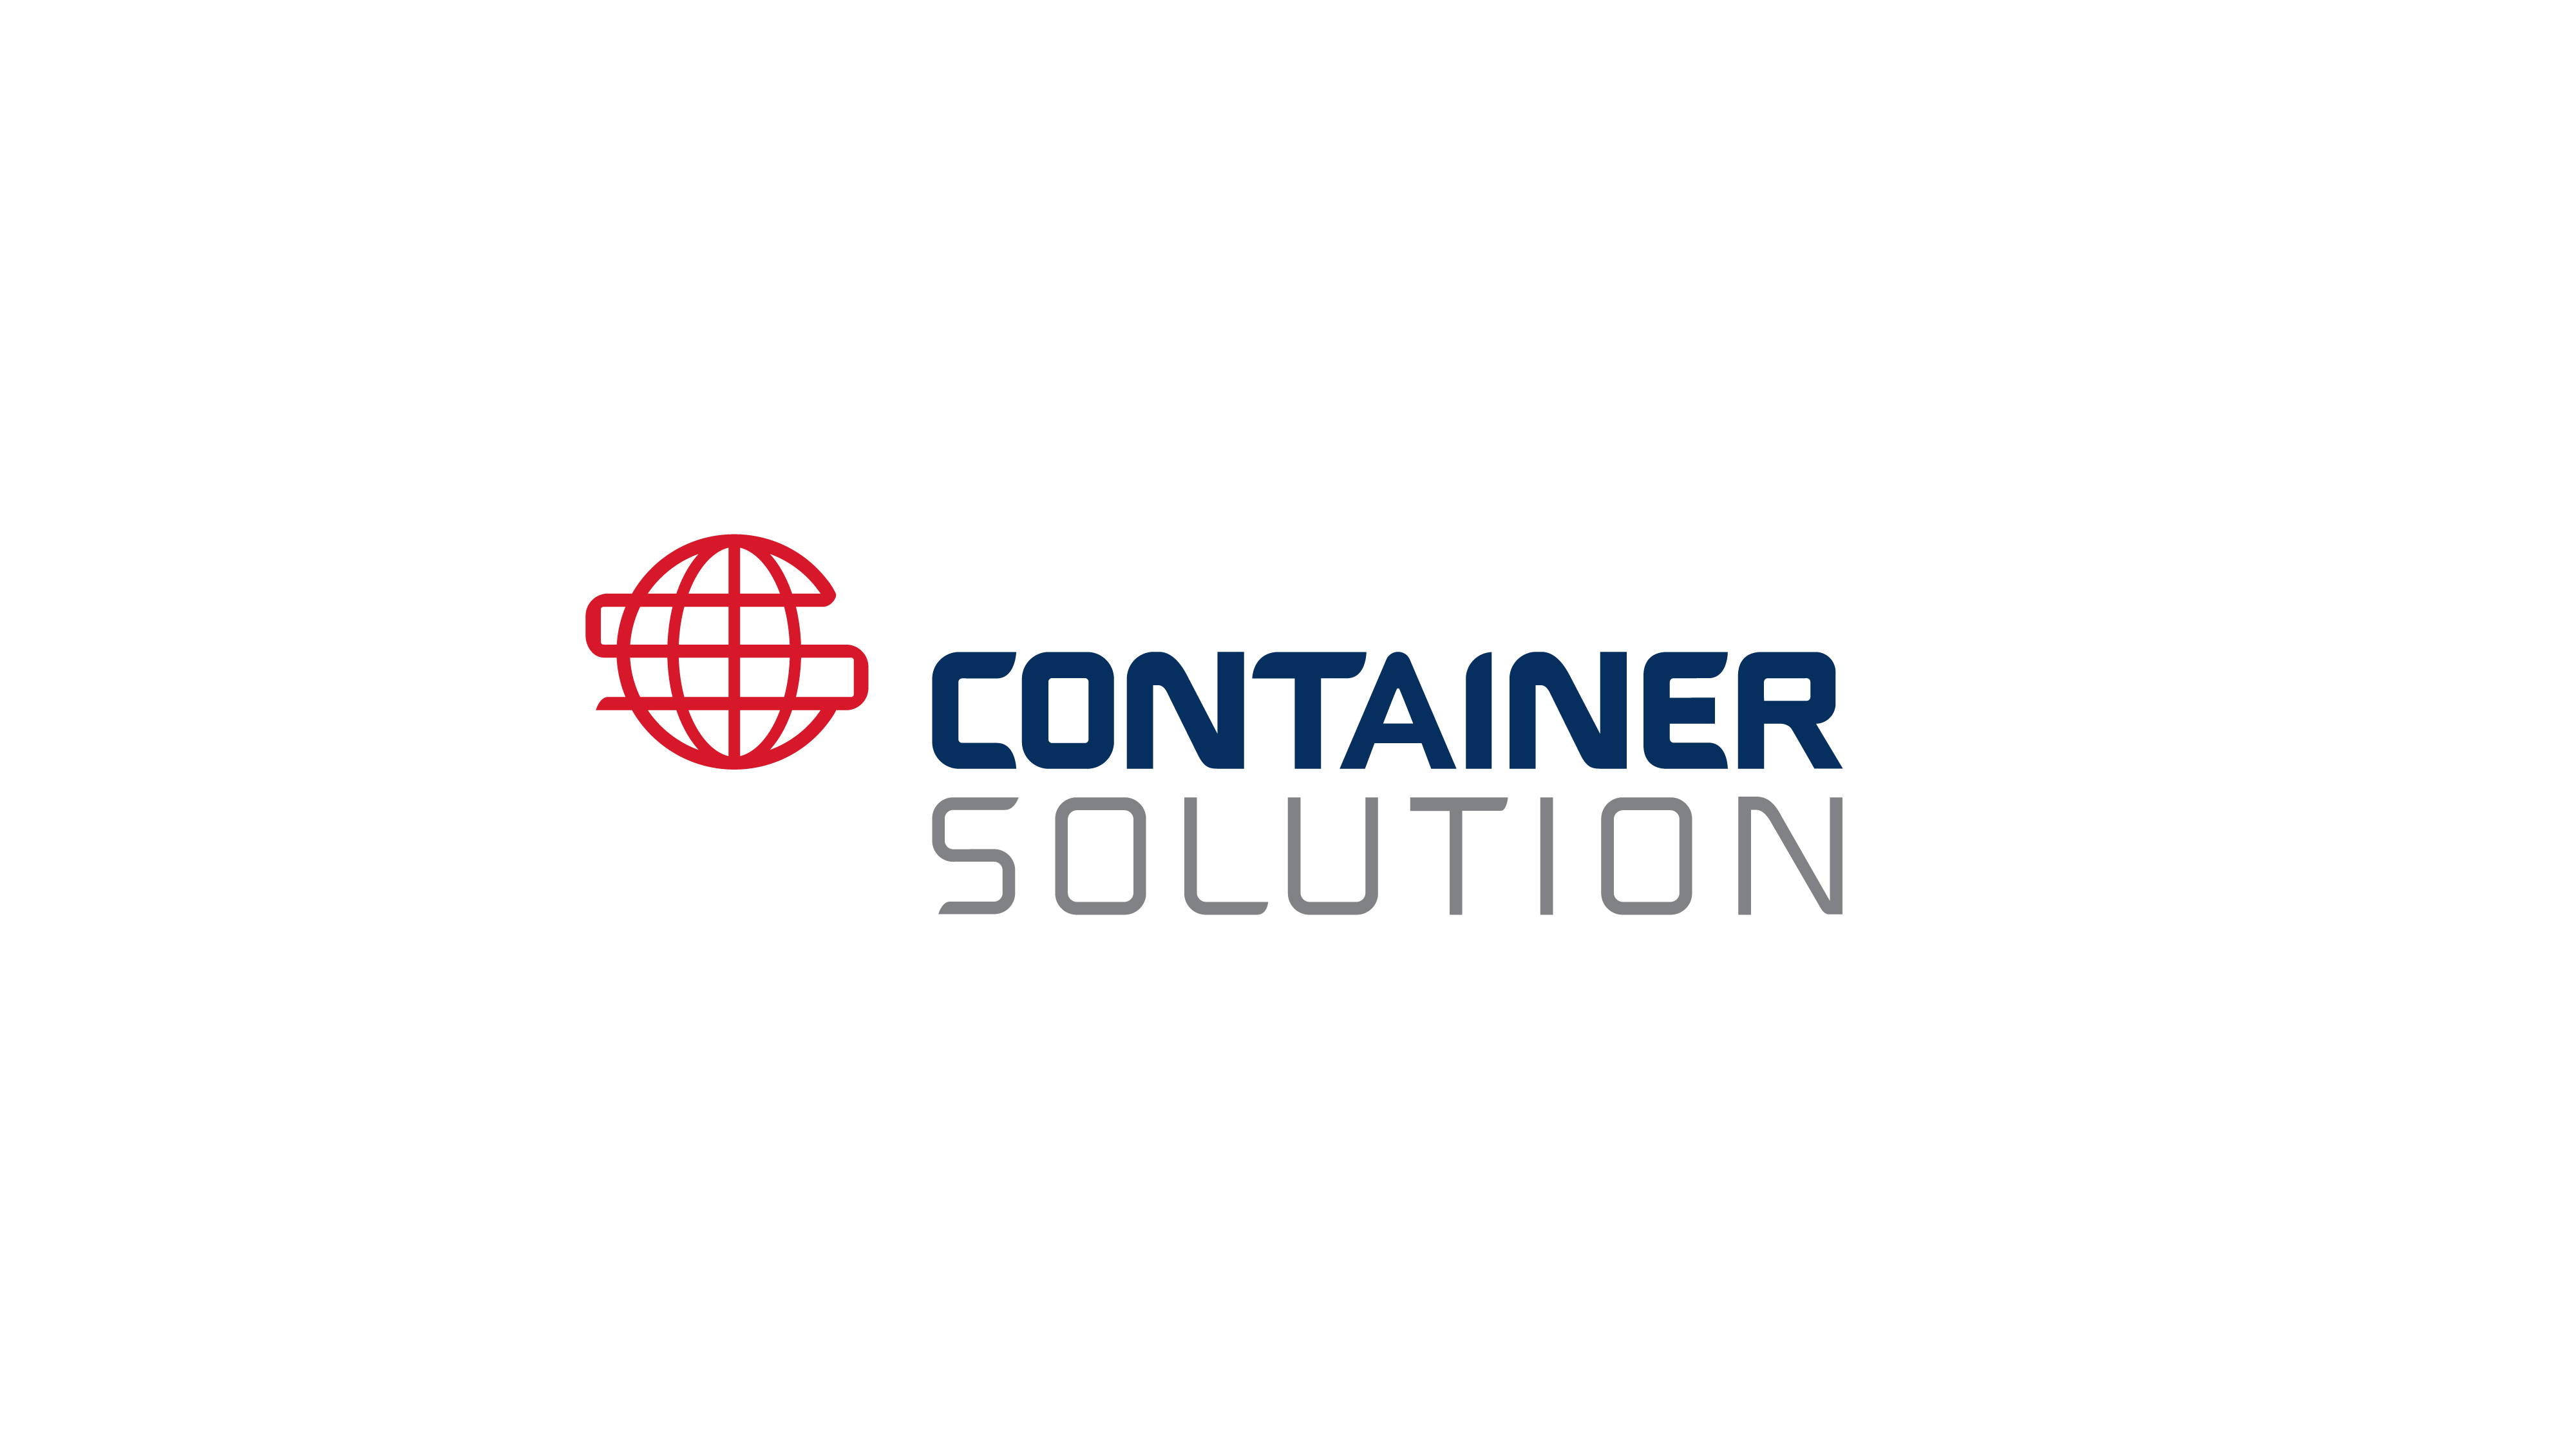 Container Solution